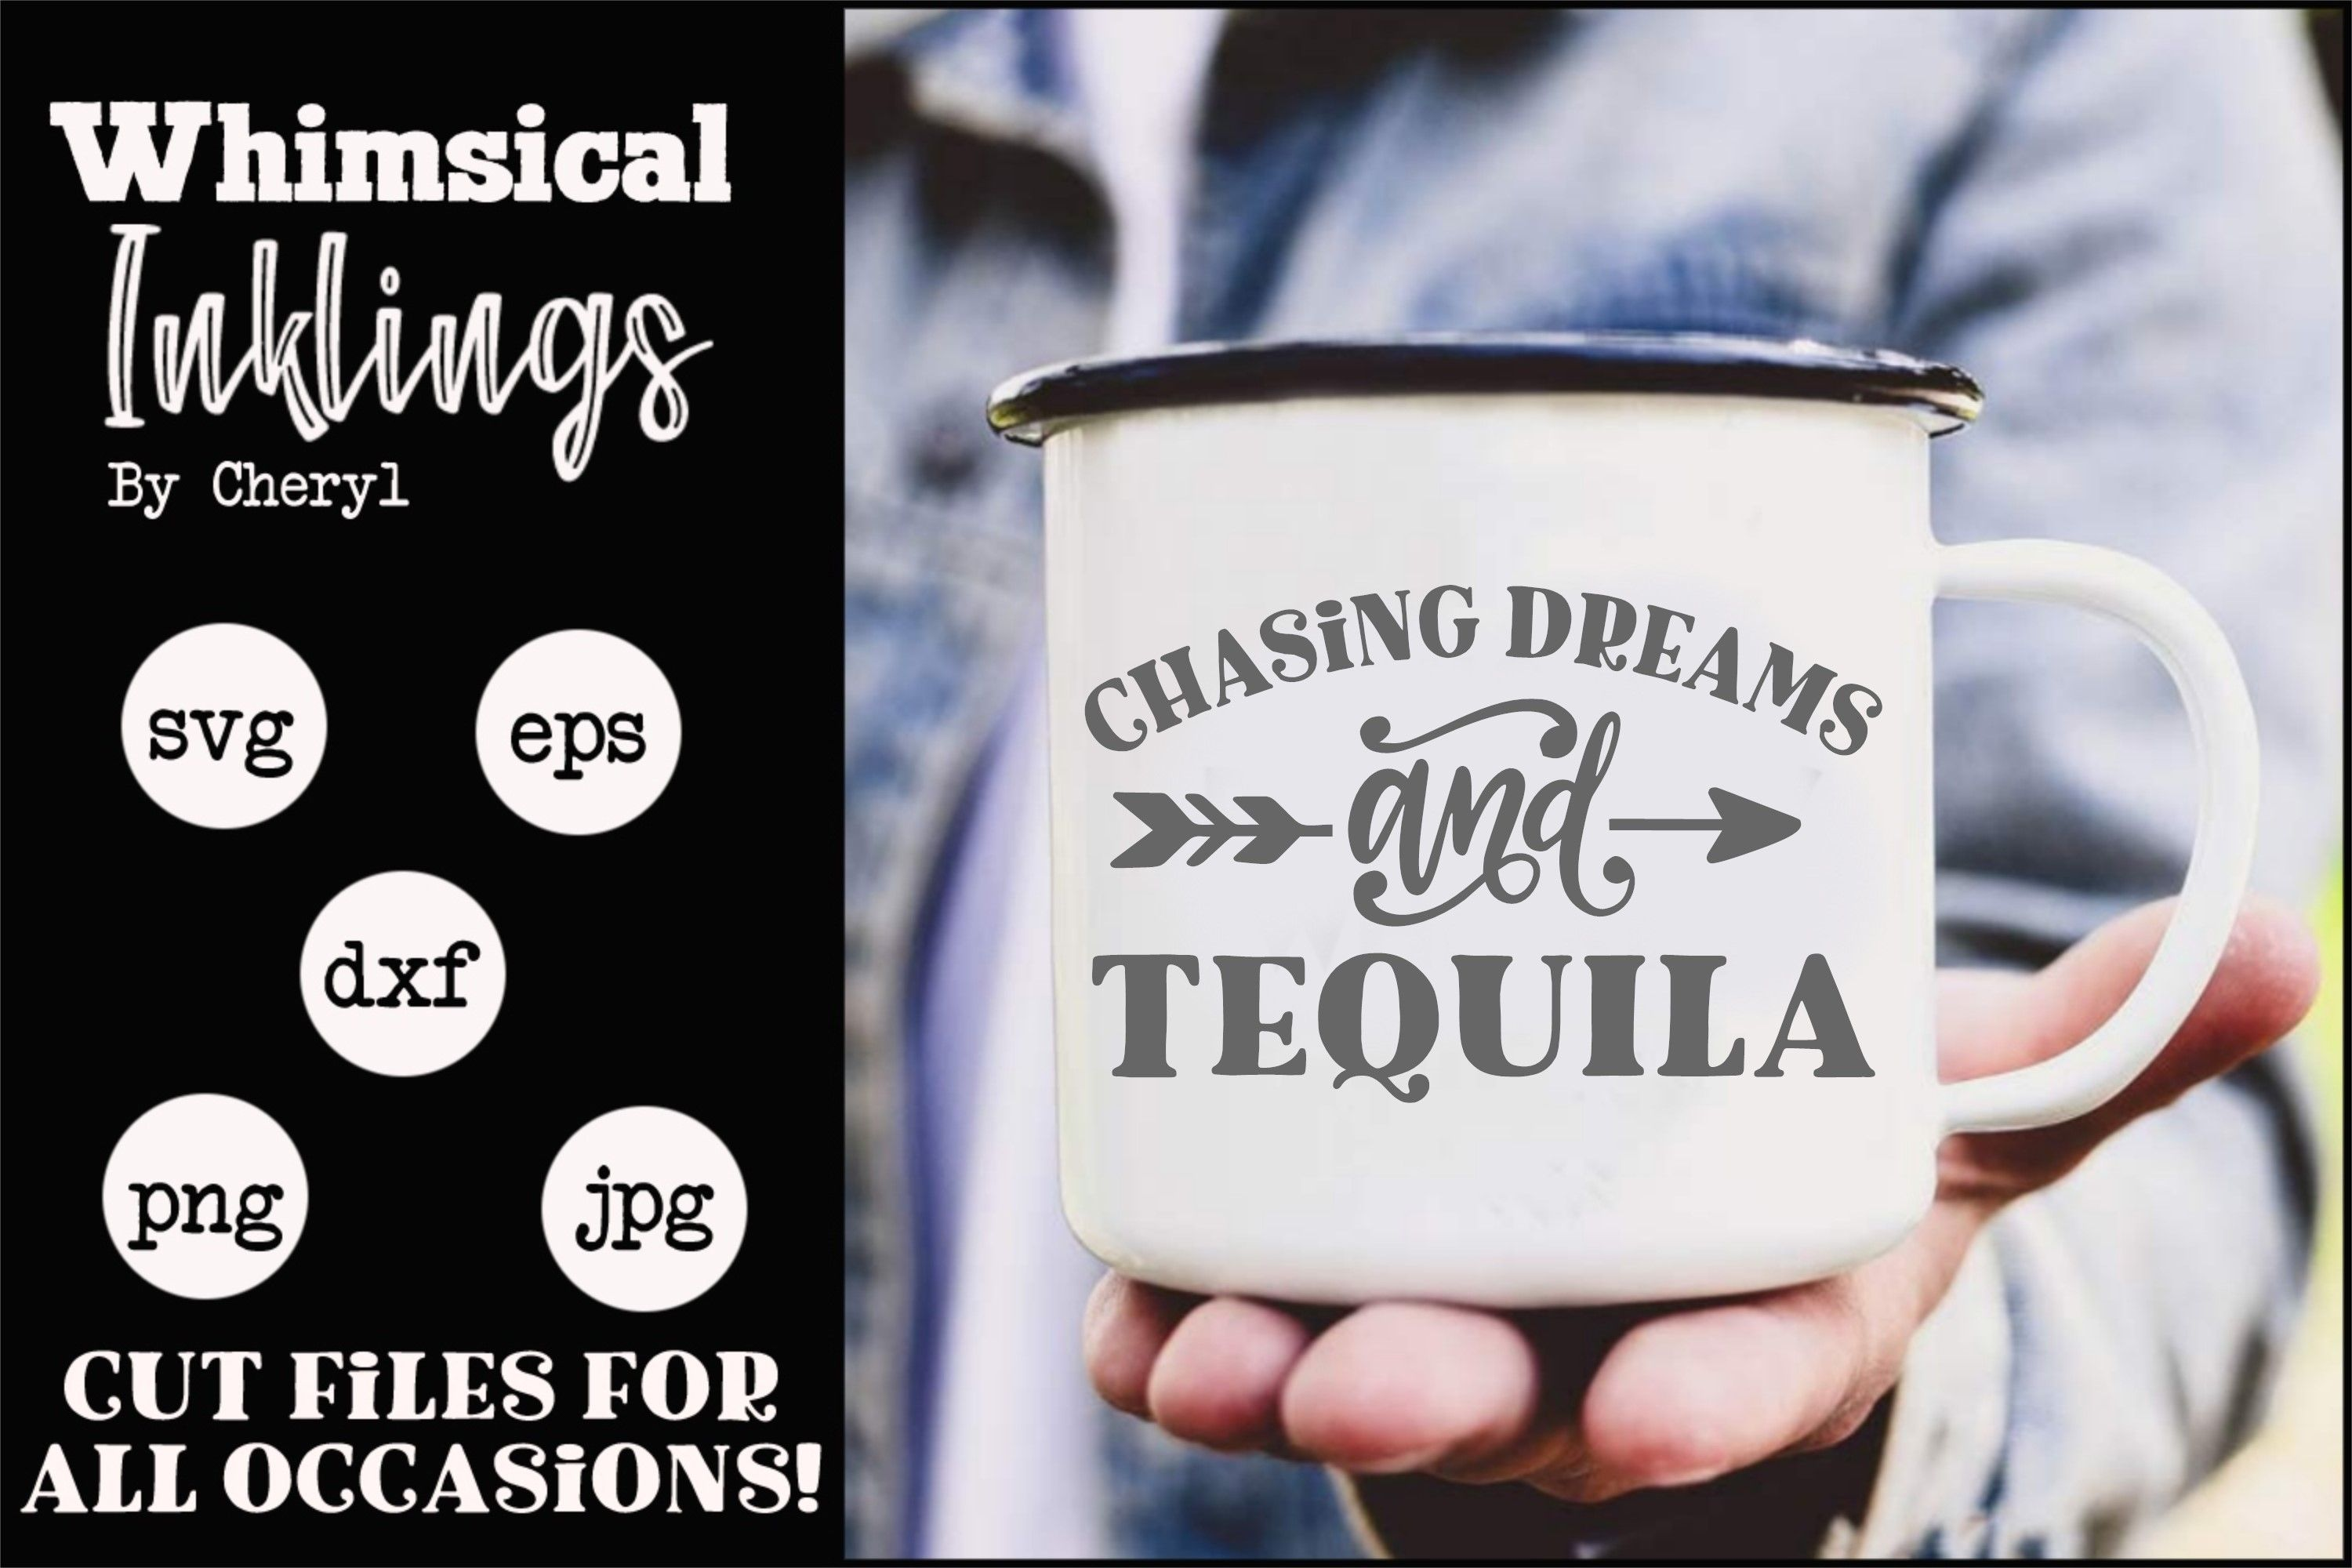 Chasing Dreams And Tequila Svg In 2020 Chasing Dreams Svg Tequila